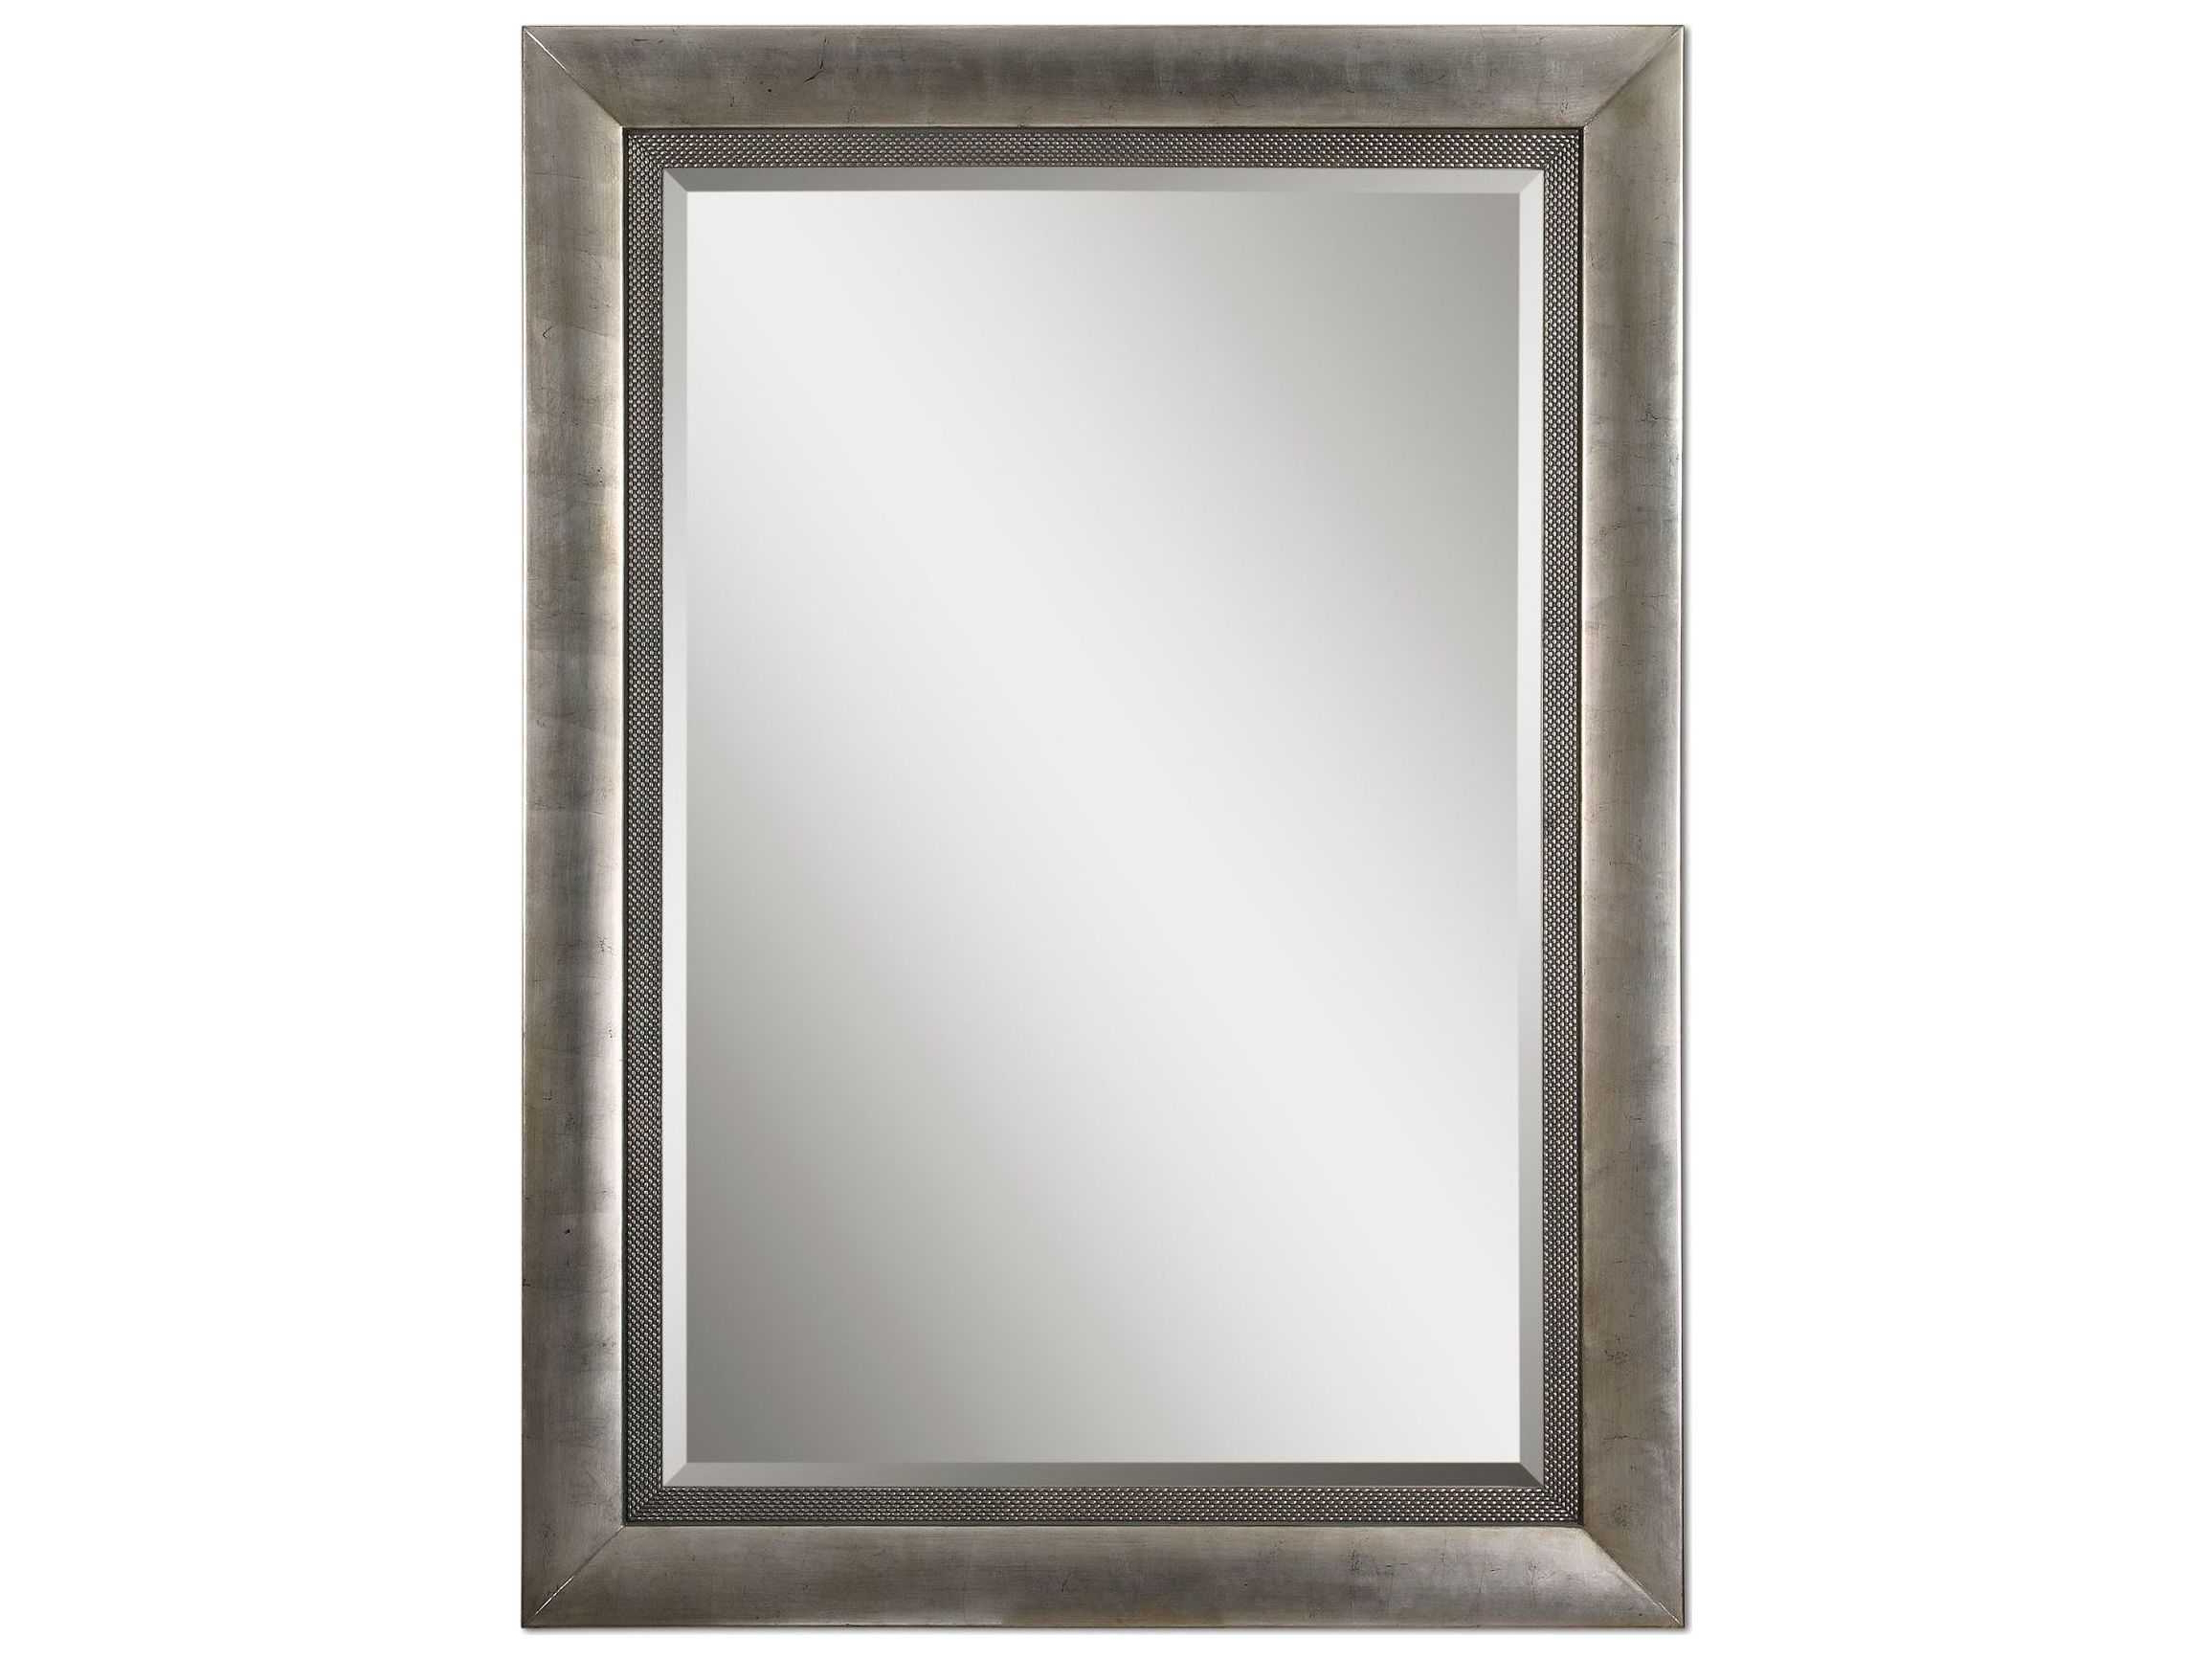 Uttermost Gilford 62 X 86 Antique Silver Wall Mirror In Latest Antique Silver Wall Mirrors (View 20 of 20)